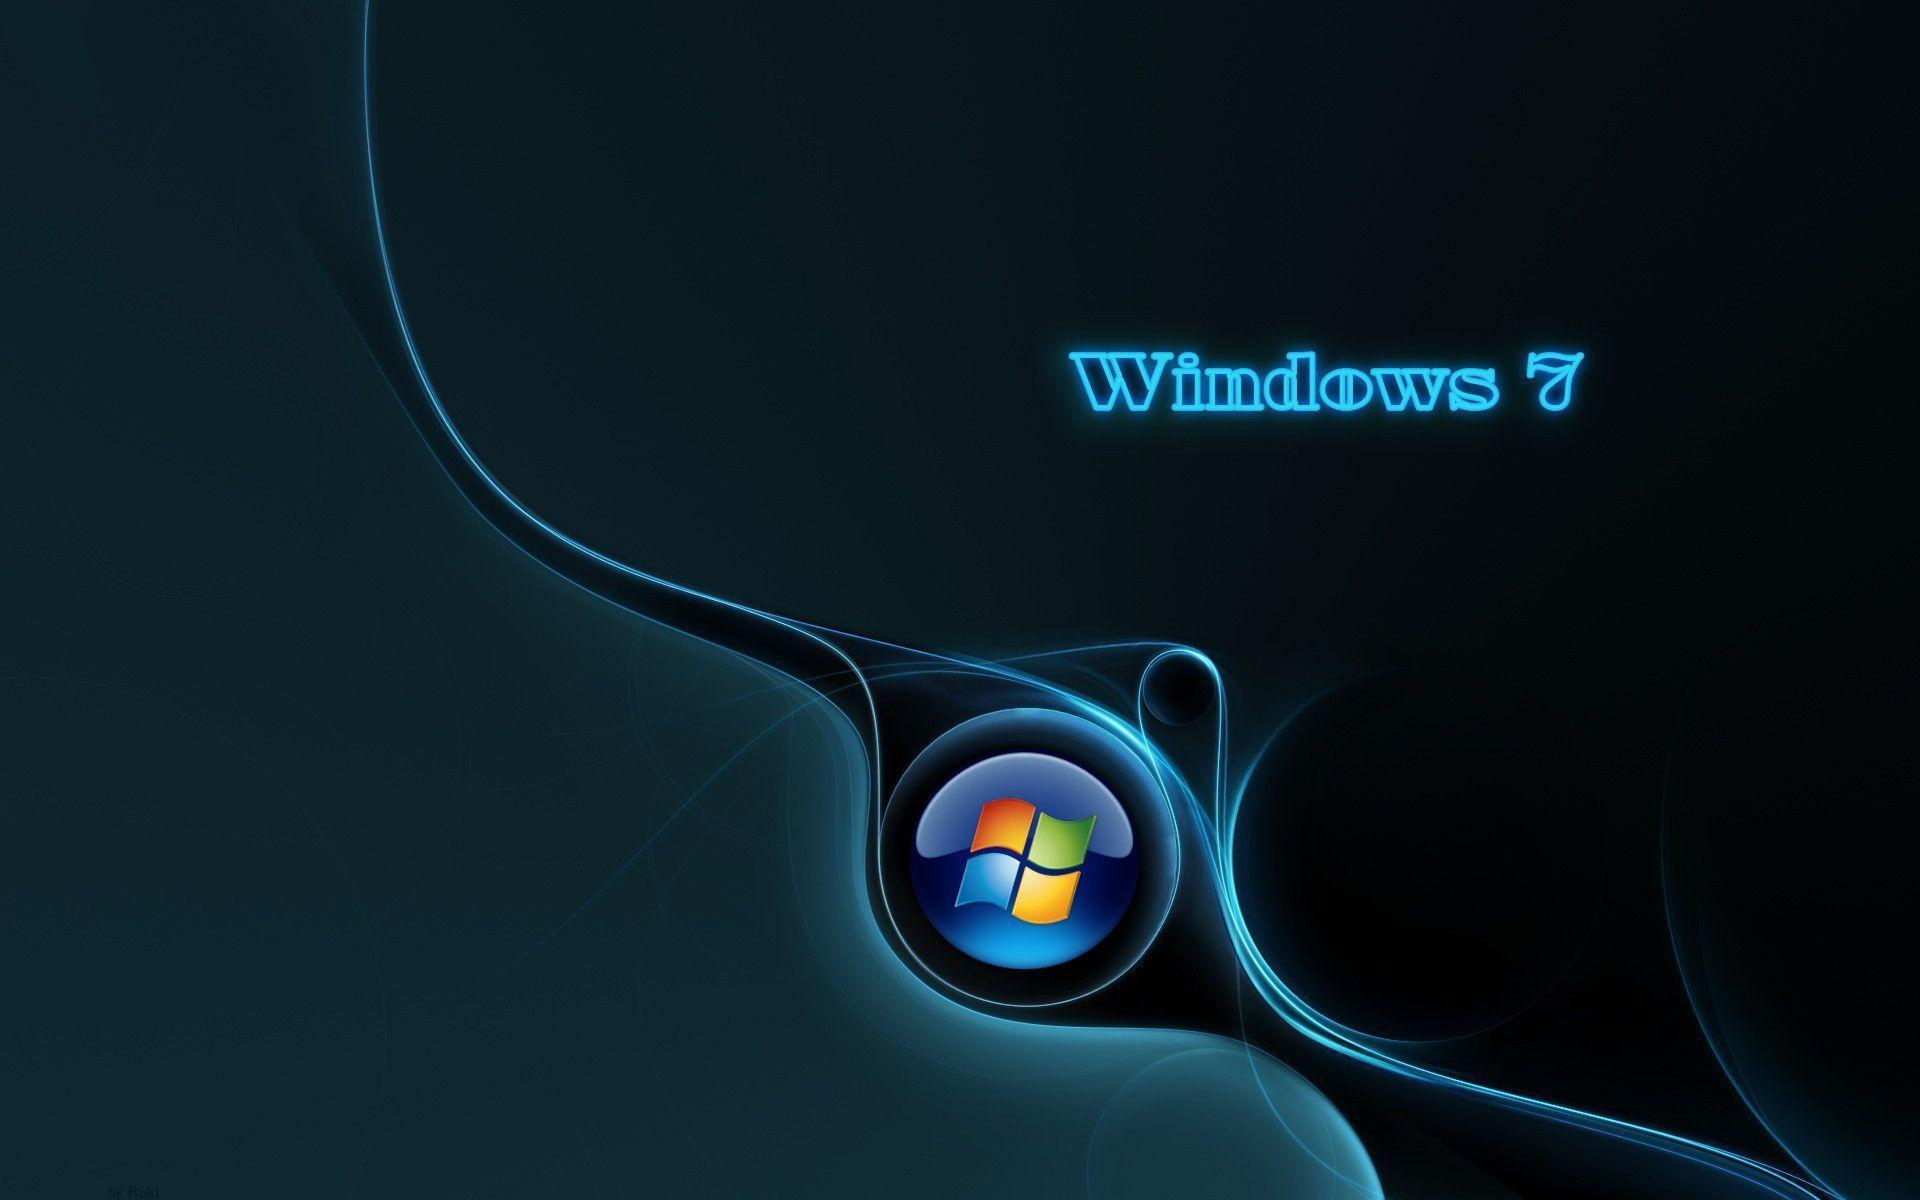 Windows 7 Backgrounds HD Wallpapers Wallpapers